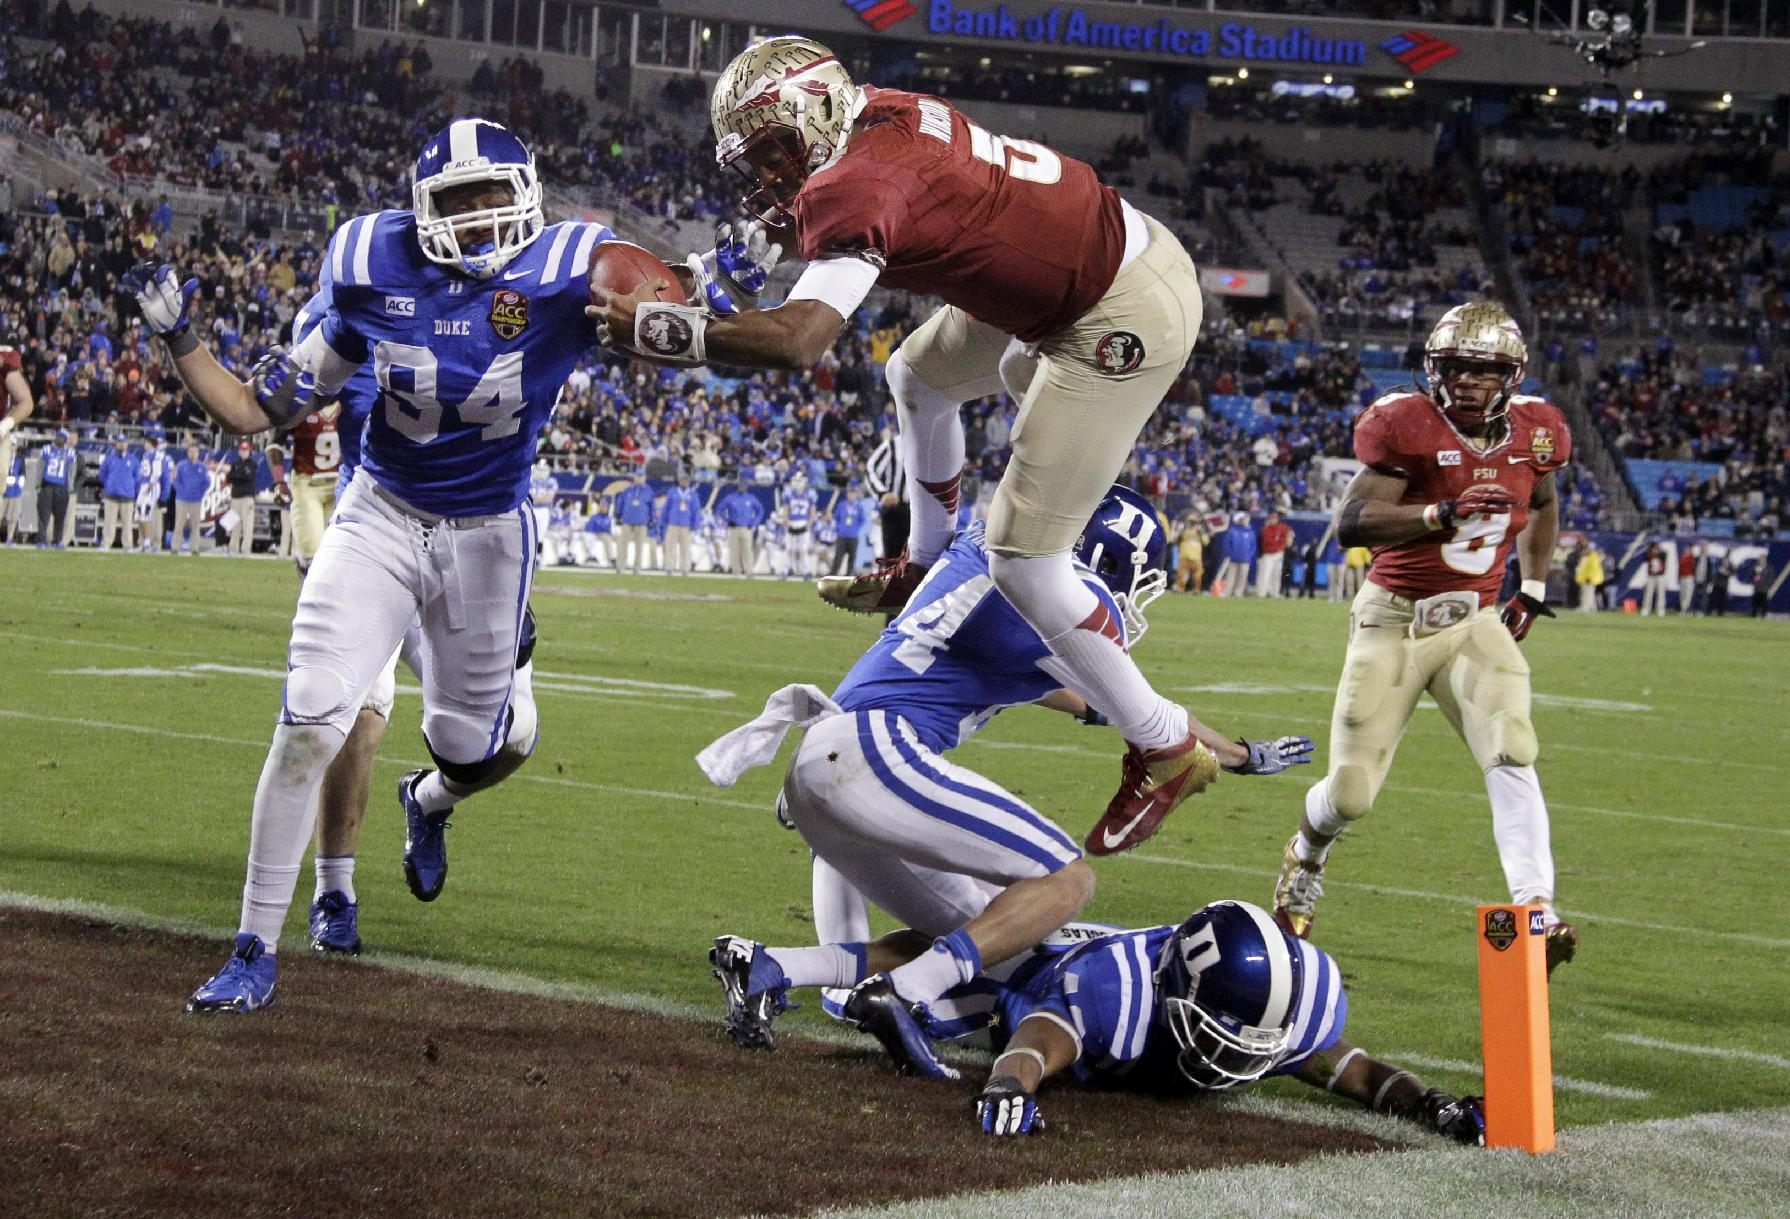 Florida State's Jameis Winston, top center, leaps over Duke's Bryon Fields (14) for a touchdown in the second half of the Atlantic Coast Conference Championship NCAA football game in Charlotte, N.C., Saturday, Dec. 7, 2013. Florida State won 45-7